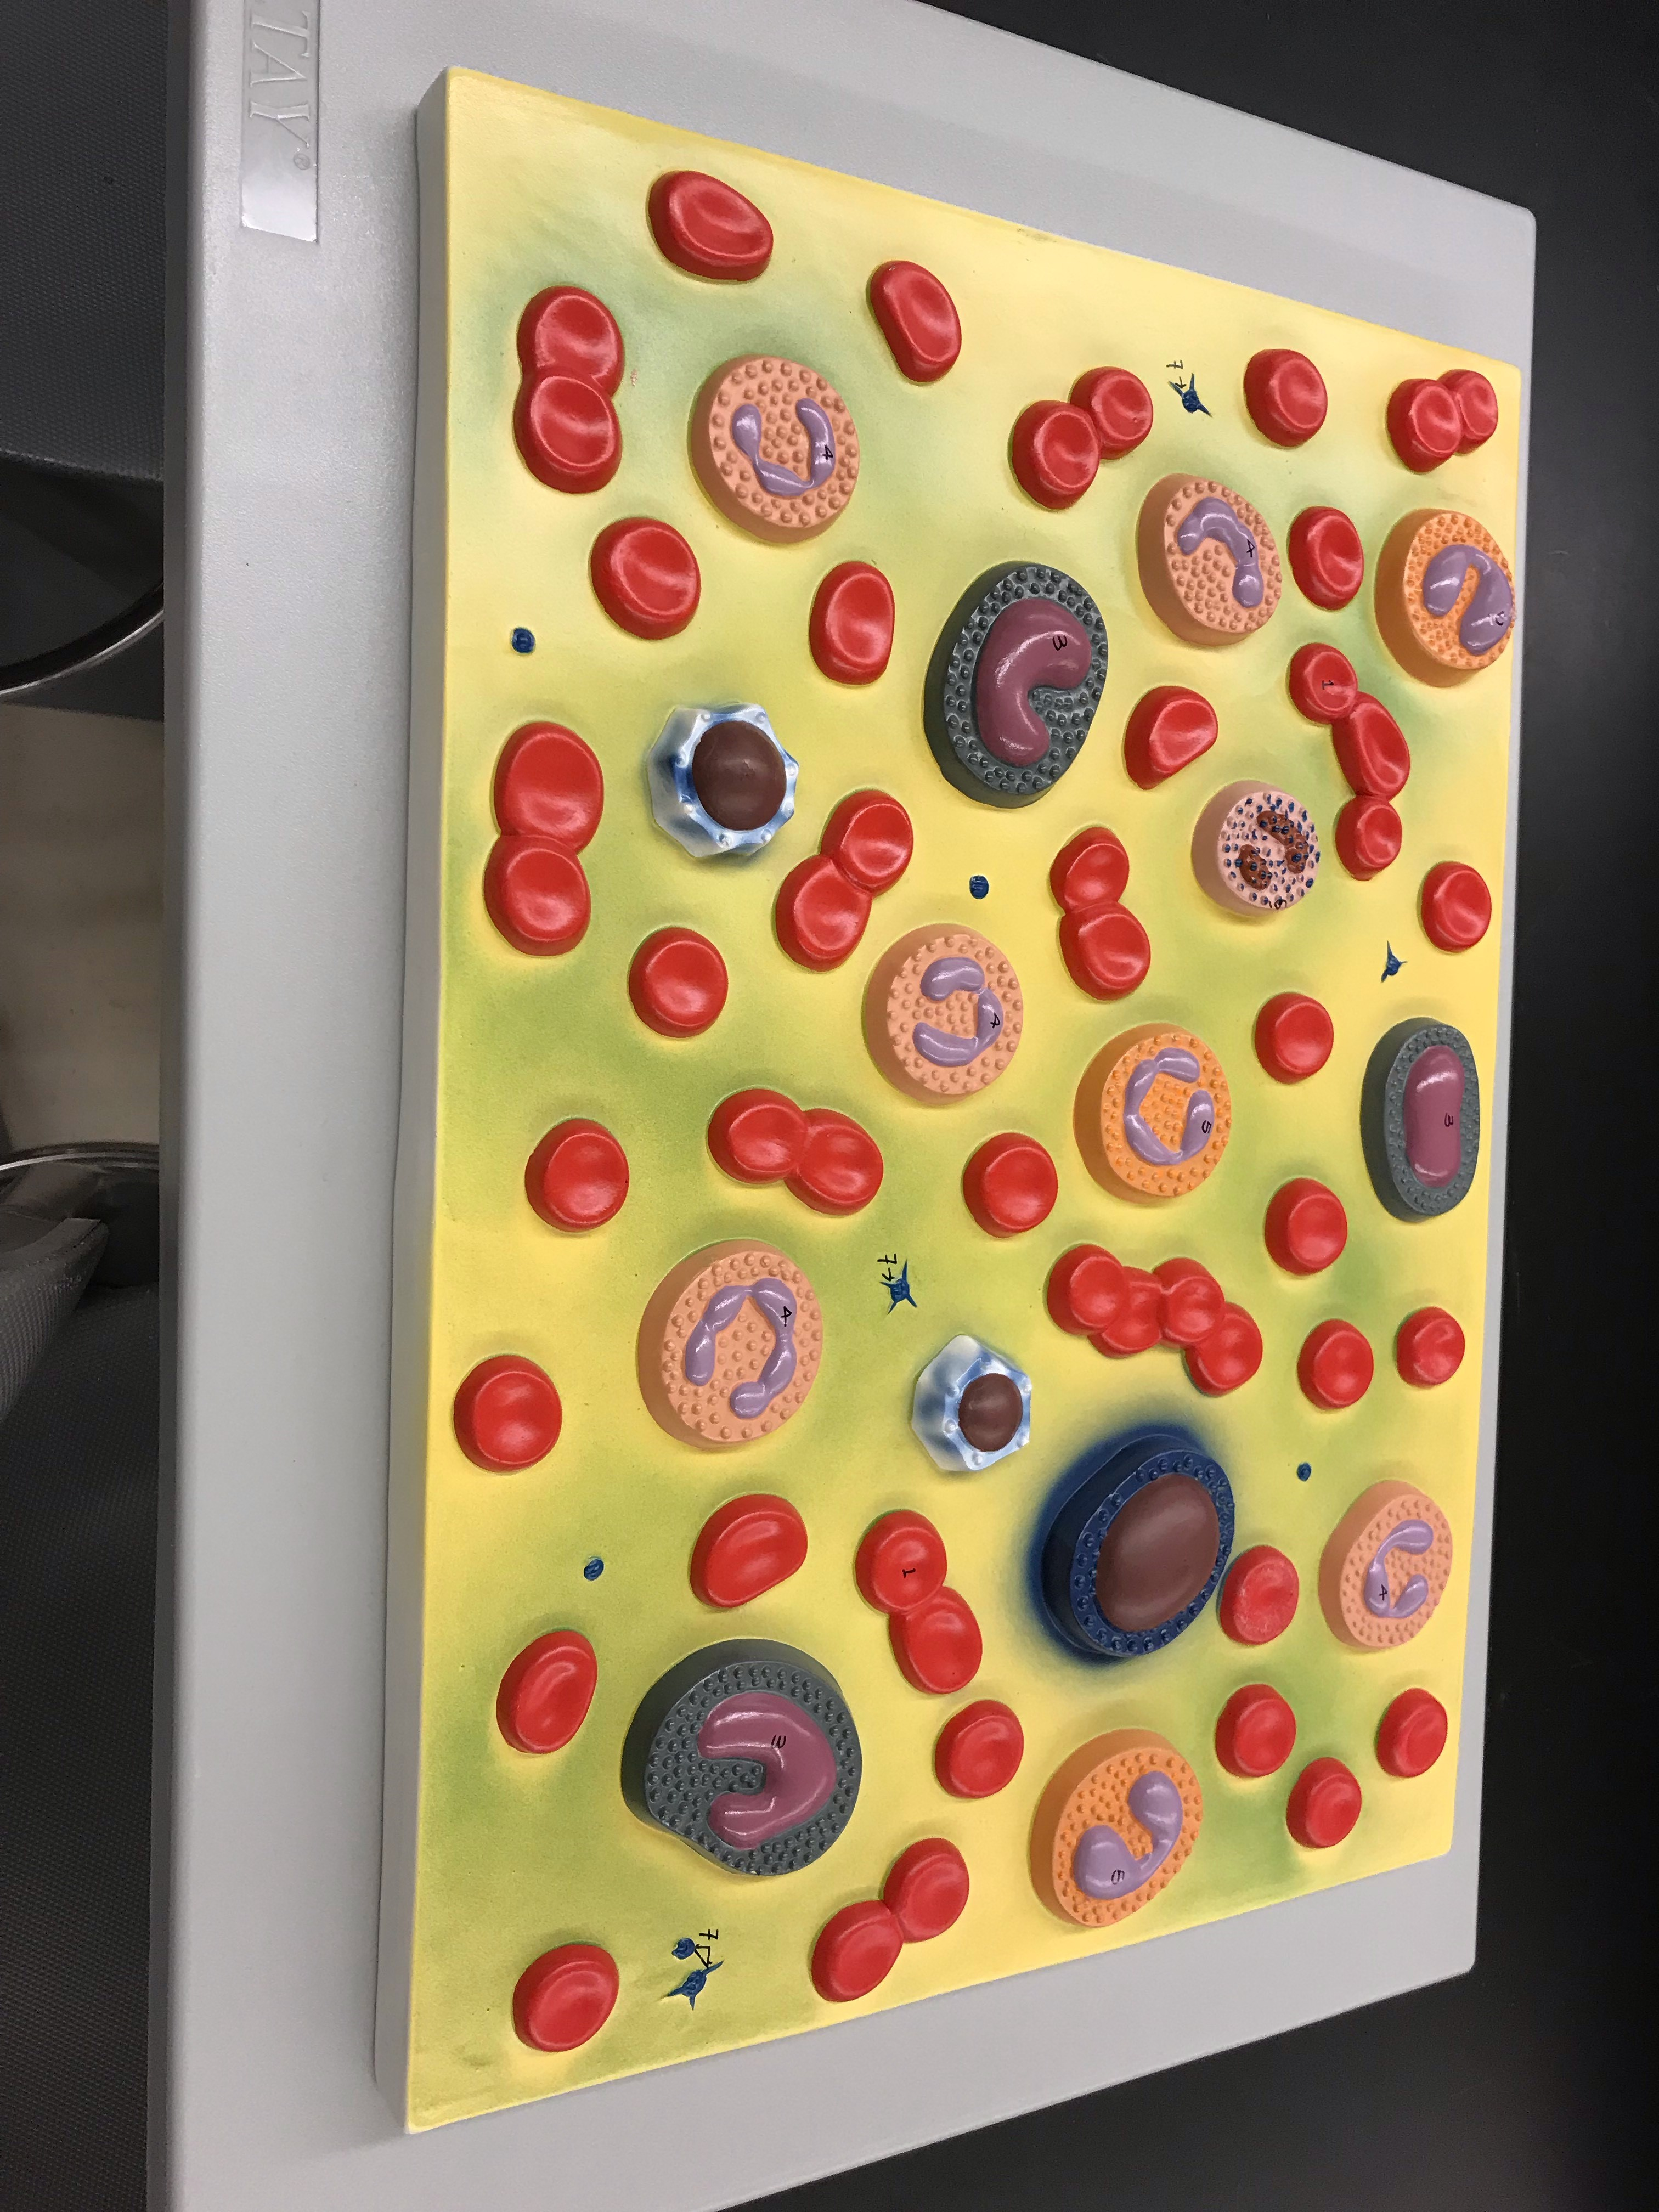 Human Blood Cell model